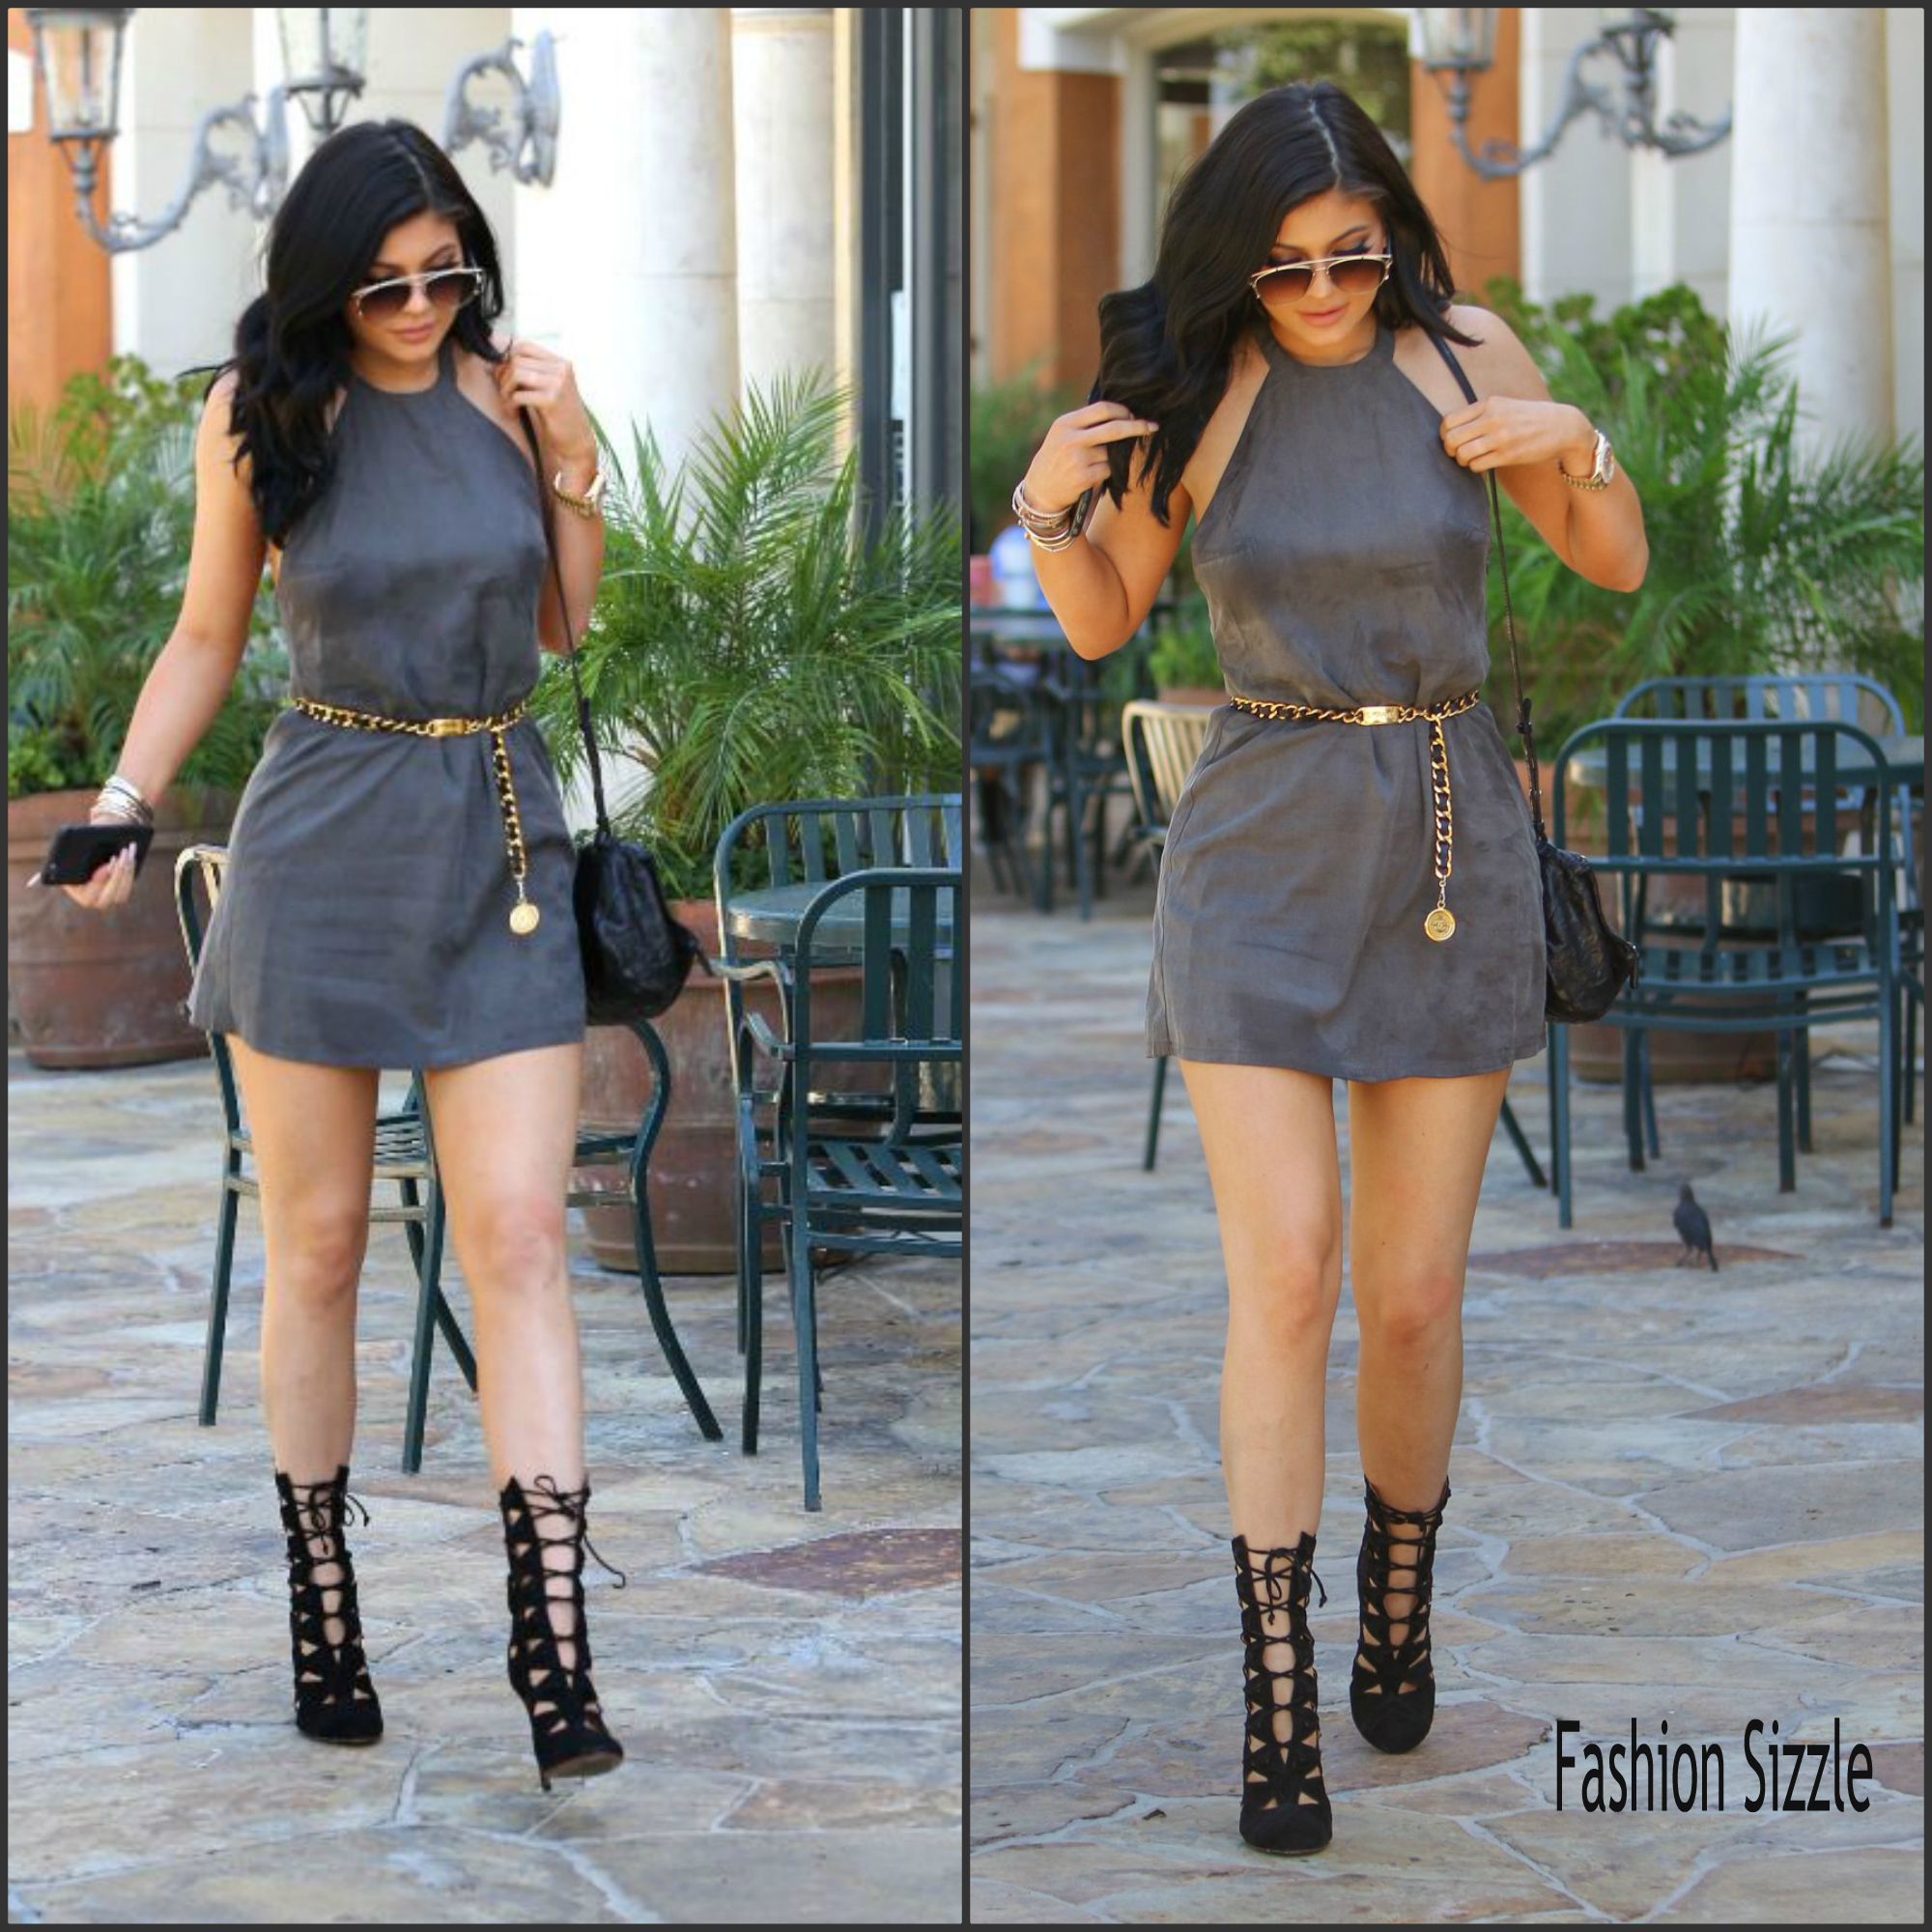 kylie-jenner-in-nbd-dress-out-in-la